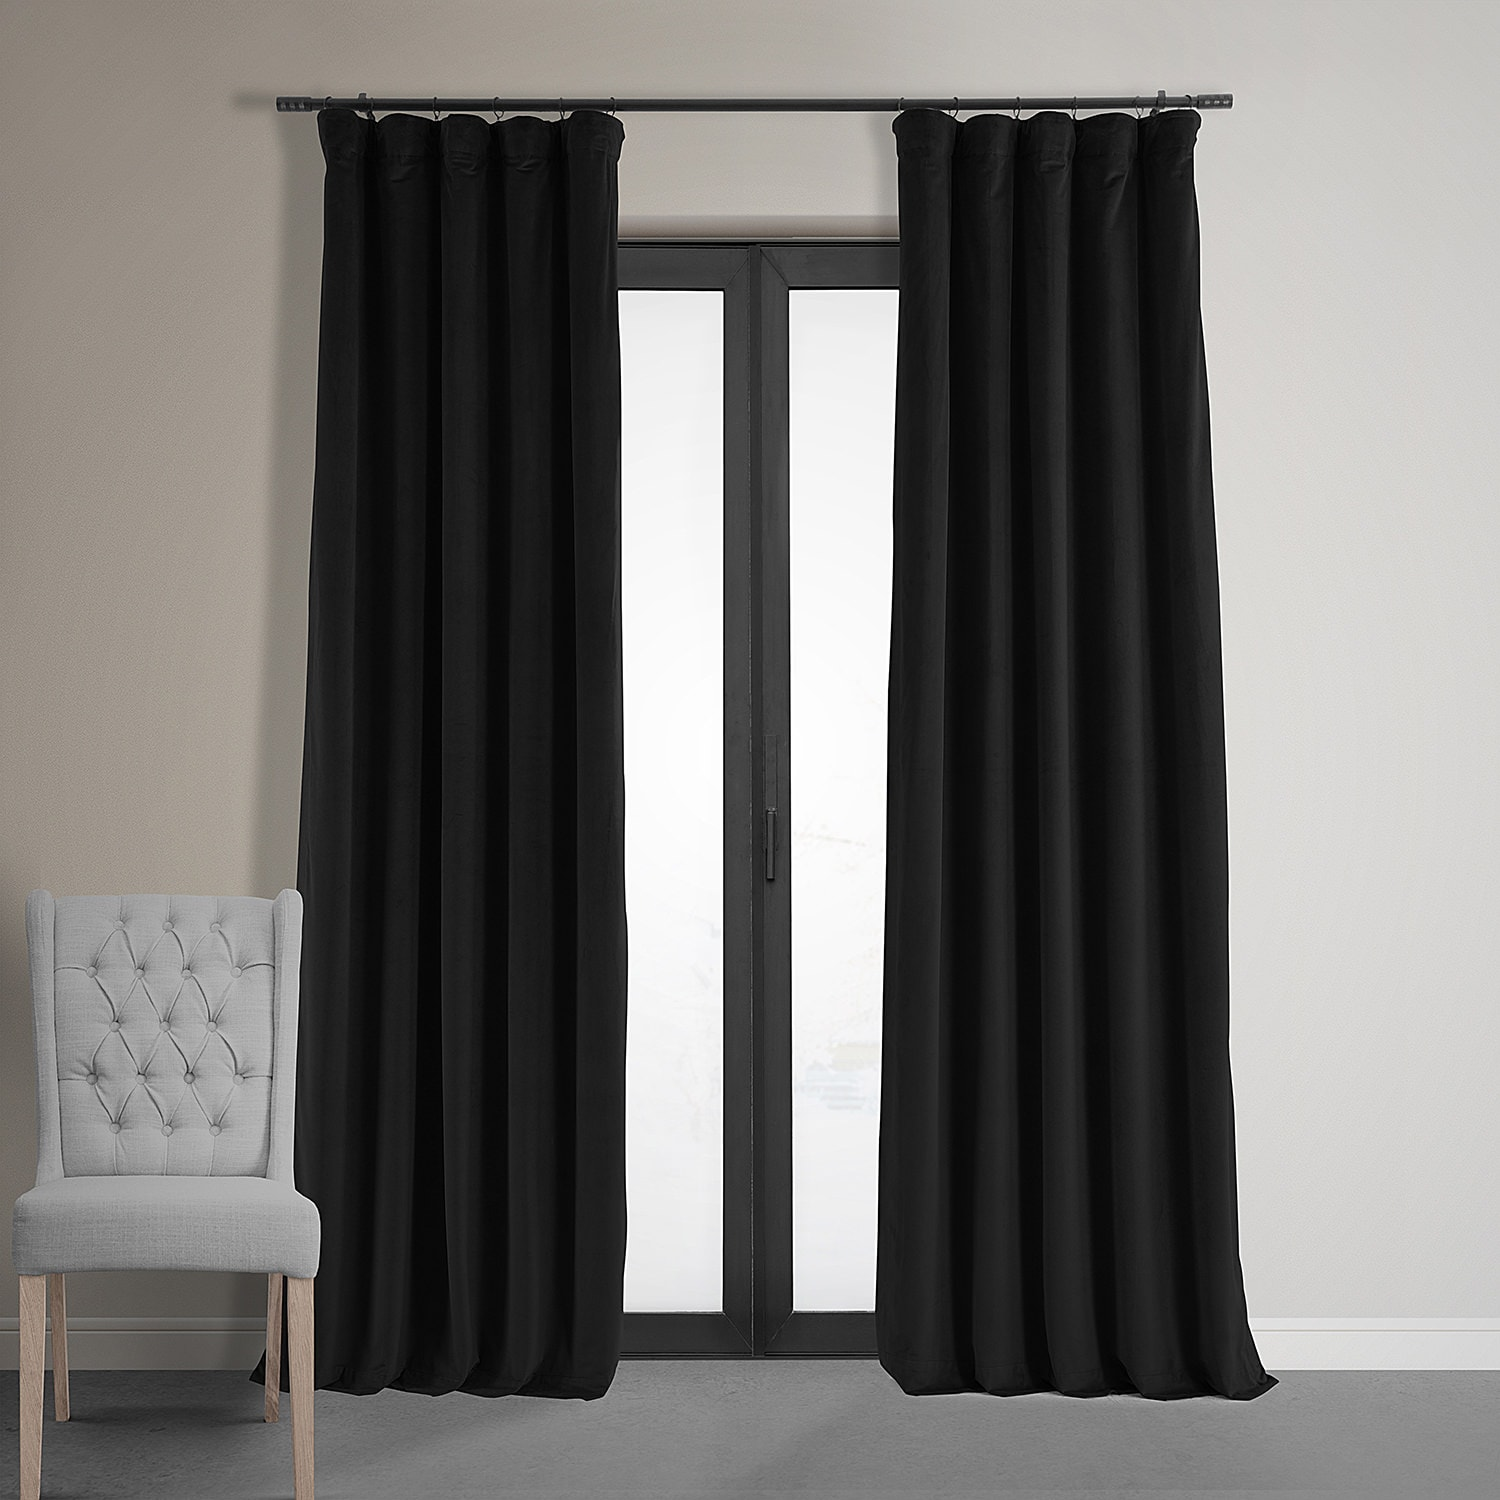 depositphotos curtain hang the black with over exit door stock velvet straight night curtains photo into